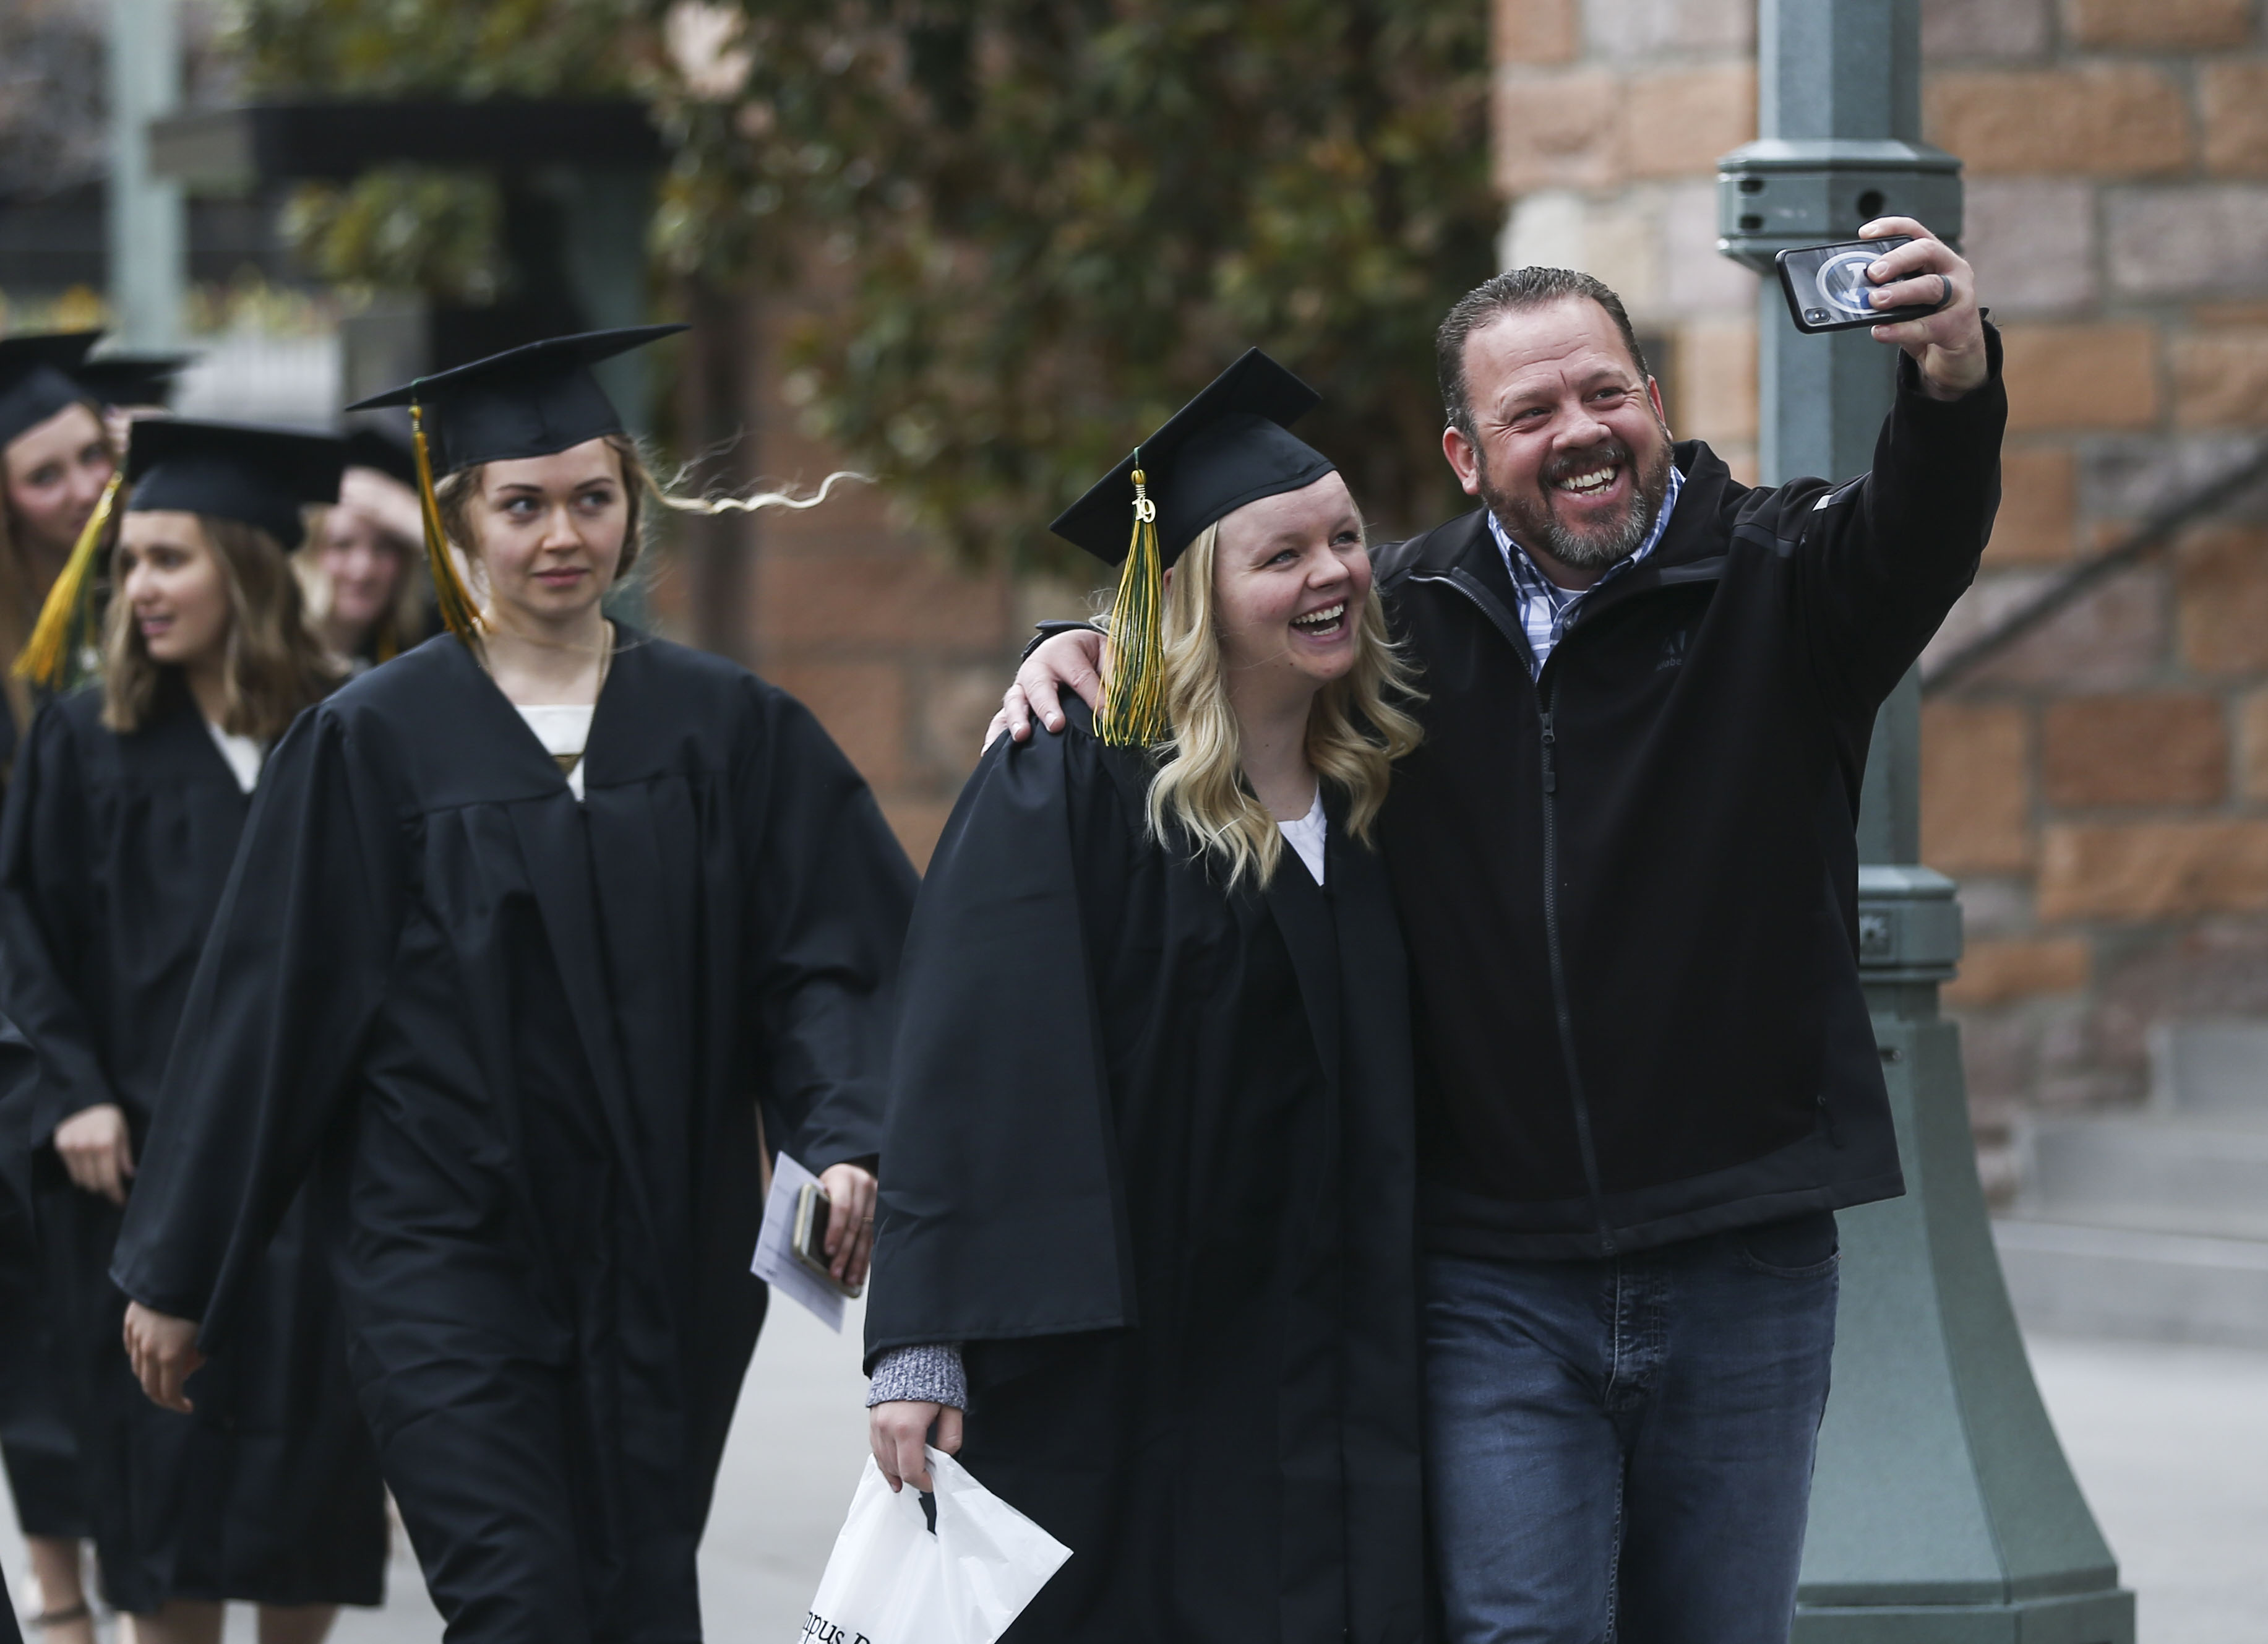 LDS business college graduate takes a selfie with her father while walking to the Tabernacle on Temple Square for her commencement ceremony in Salt Lake City on Friday, April 12, 2019.